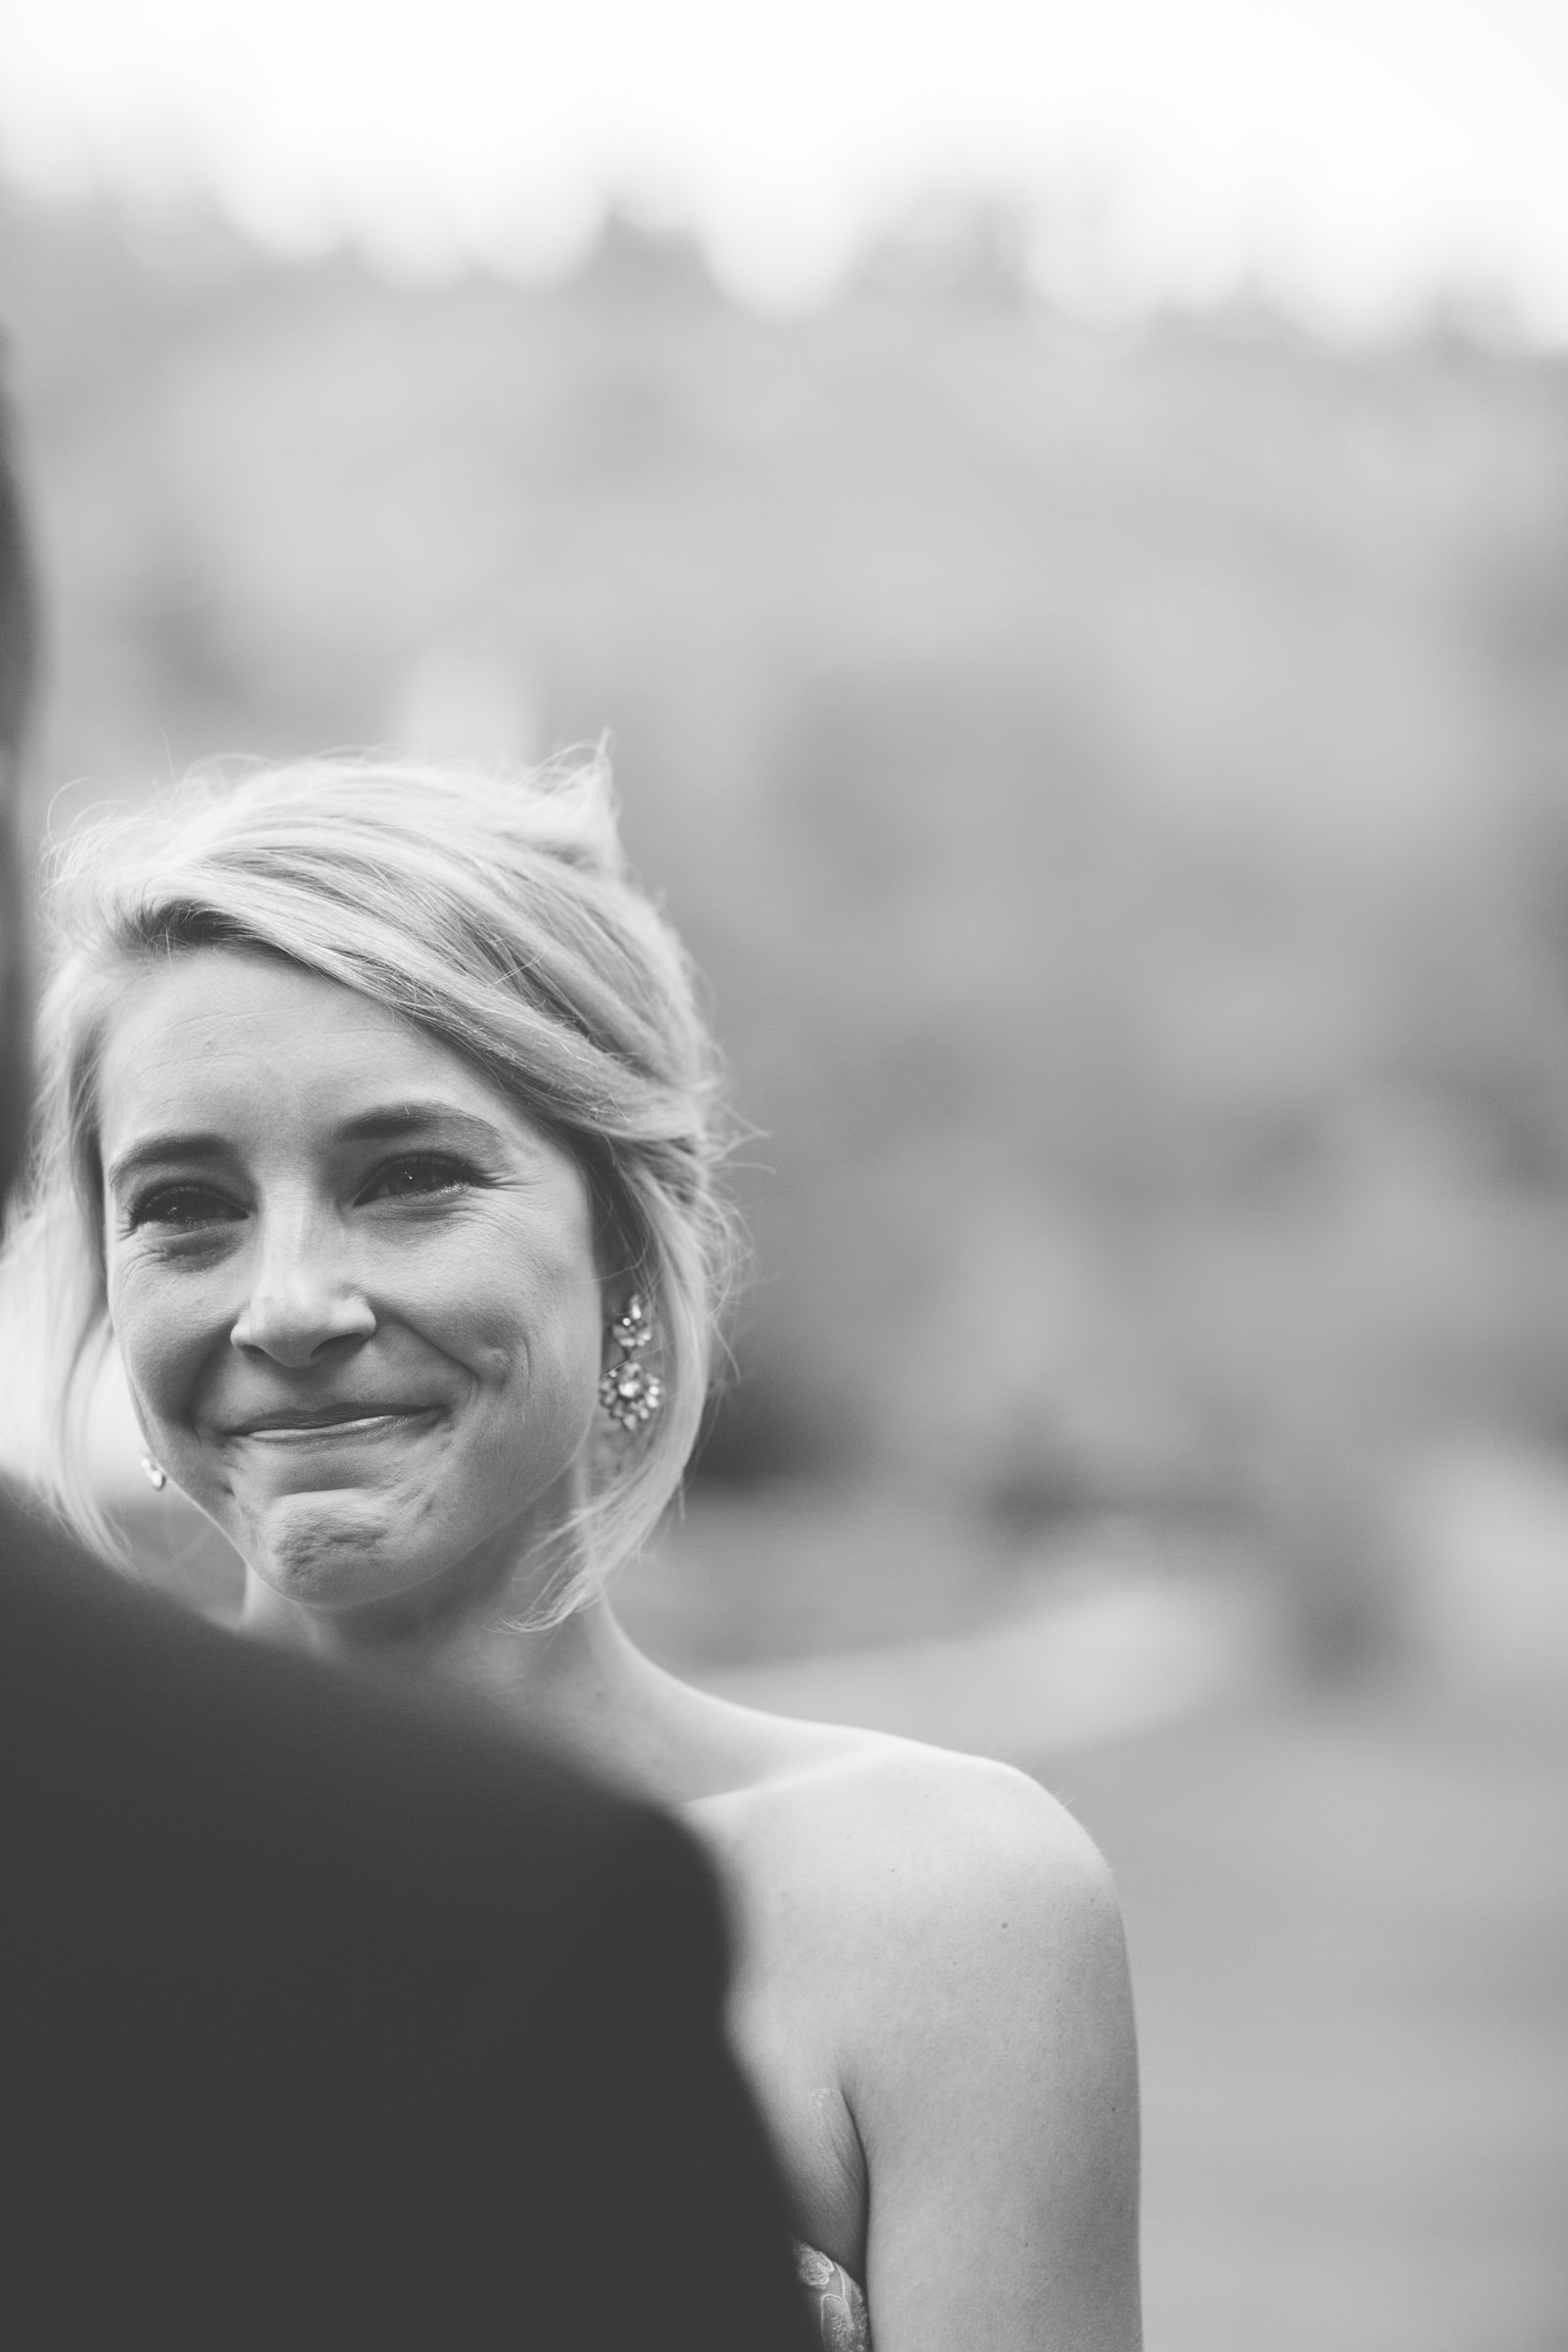 074-bride-smiling-at-groom-during-private-elopement-wedding-ceremony-at-durango-co